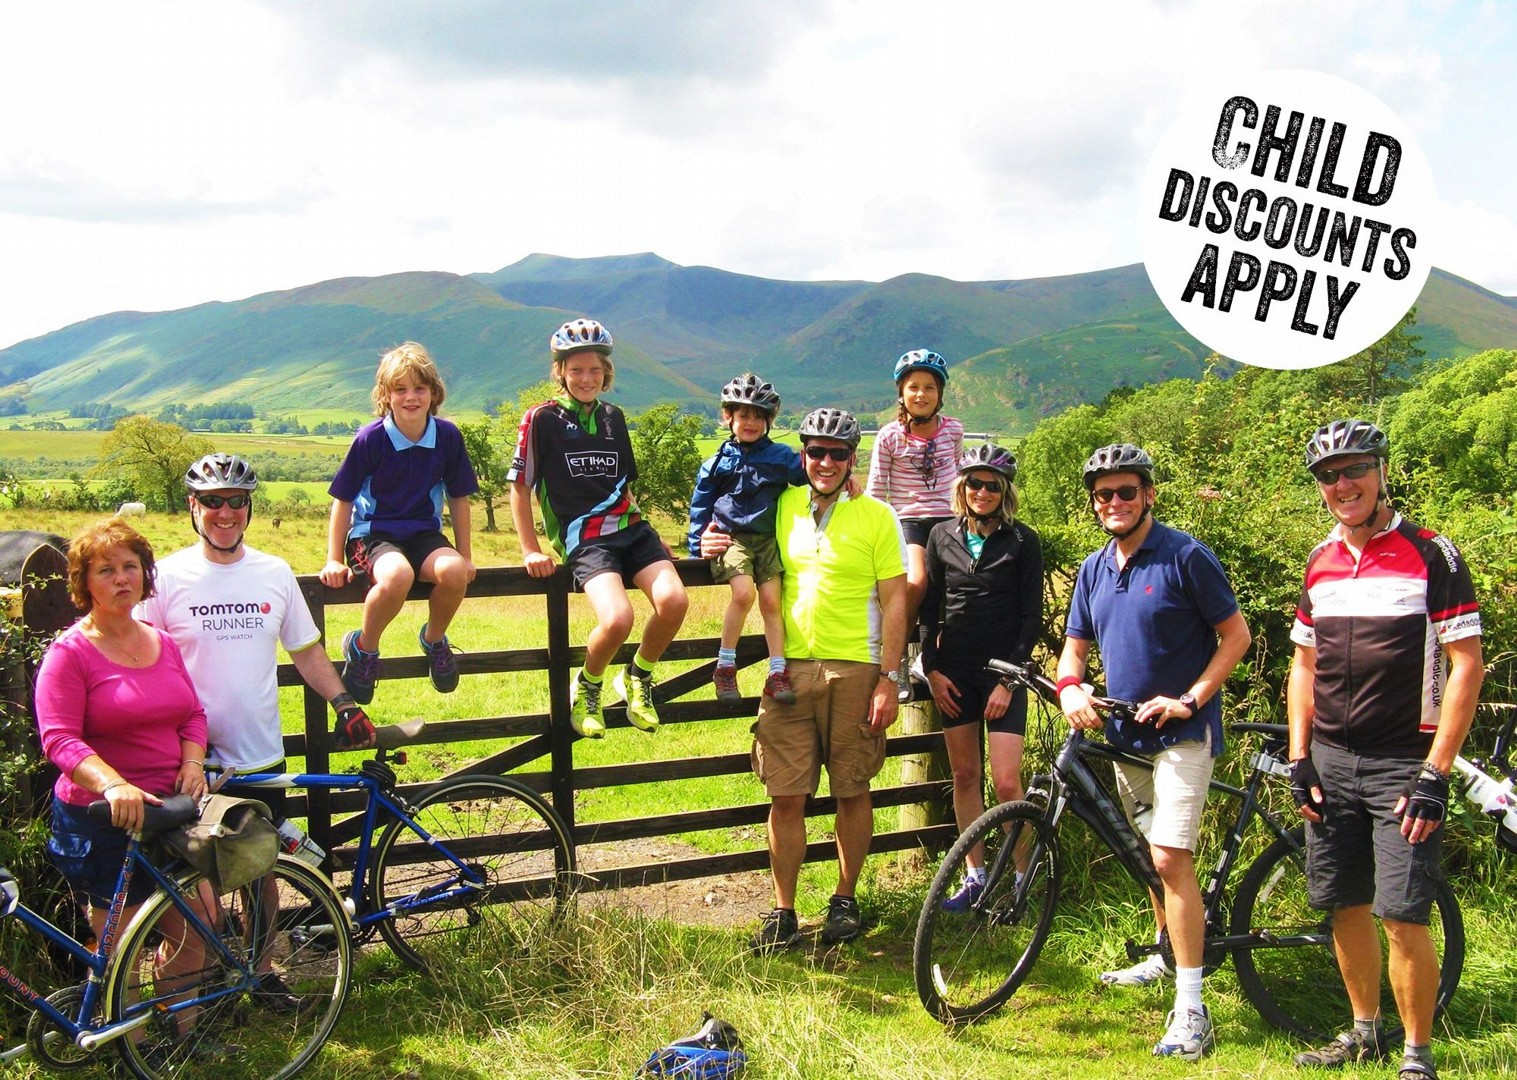 Lake District - Guided Family Bike Skills2 copy.jpg - UK - Lake District - Guided Family Bike Skills - Family Cycling